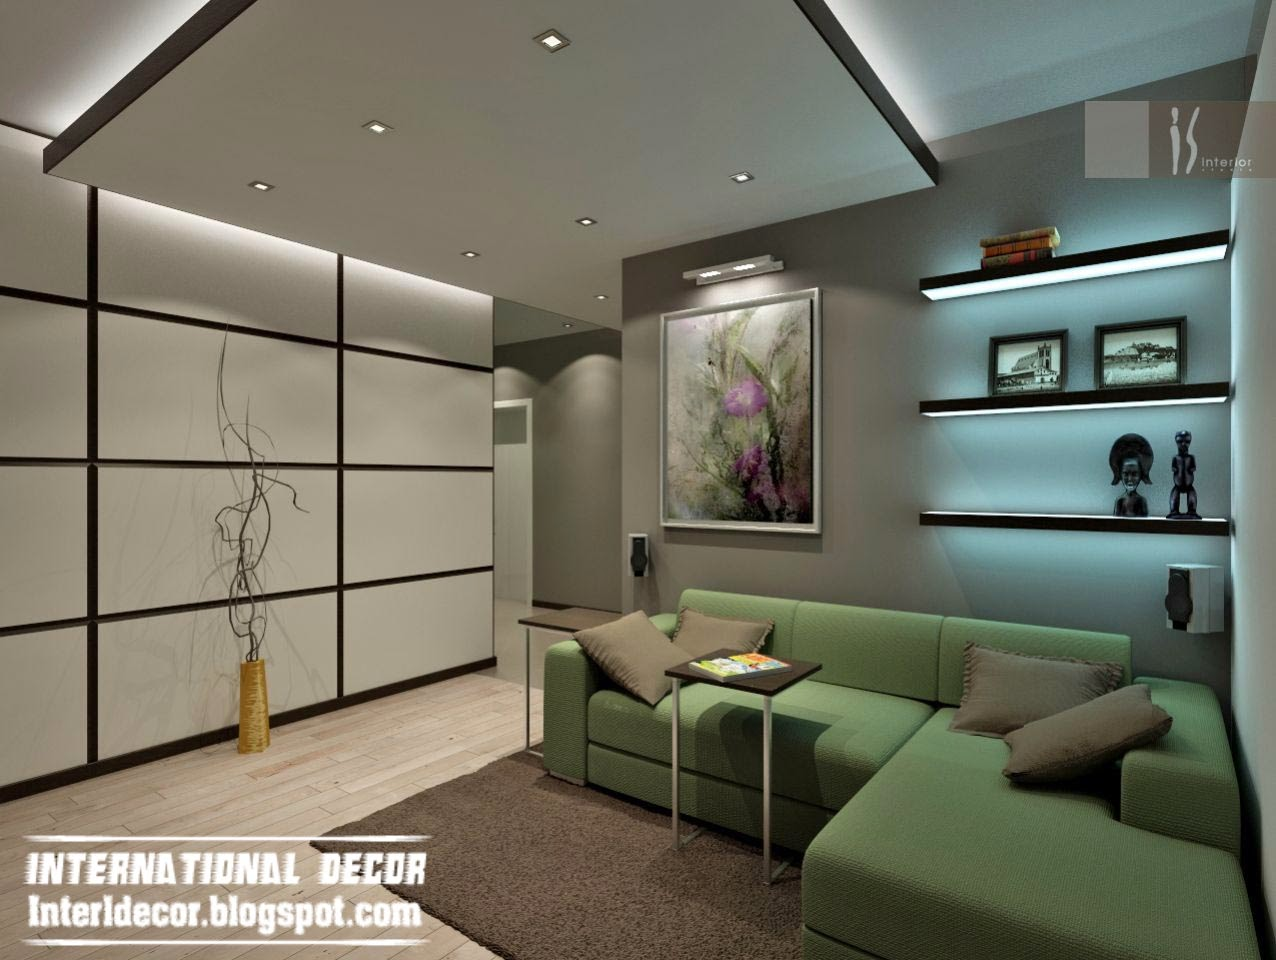 Interior decor idea top 10 suspended ceiling tiles Living room ceiling lighting ideas